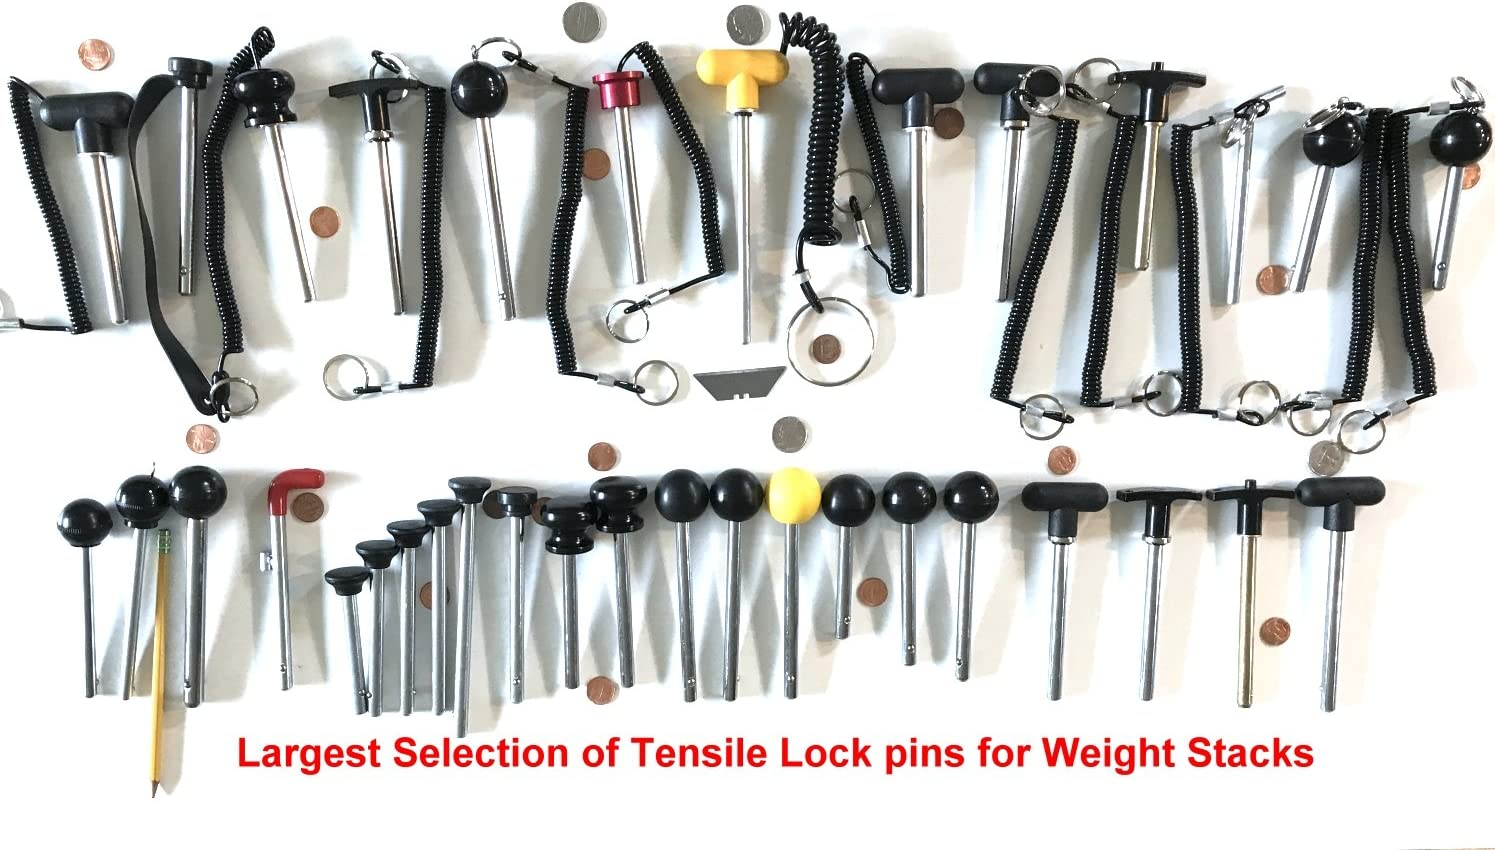 Tensile SBDs World Class Quick Release Pin T Handle Hard Plastic round knob Chrome Pl 3//8 Diameter 4 1//4 Locking Space DETENT Hitch PINS Universal Weight Stack Replacement SELECTOR KEY